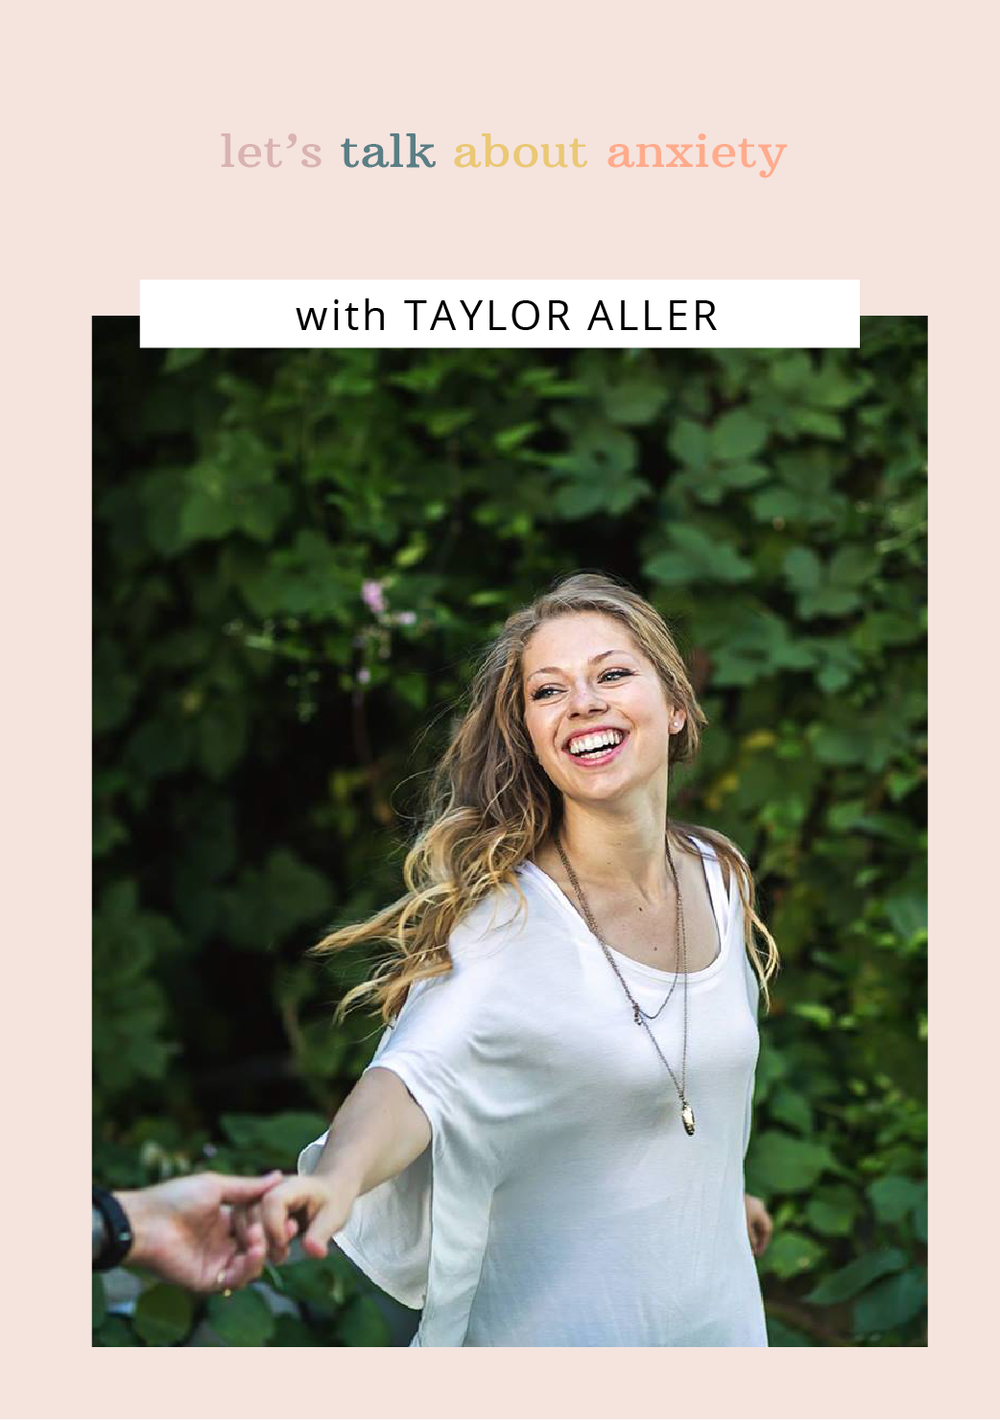 Let's Talk About Anxiety: Taylor Aller Image